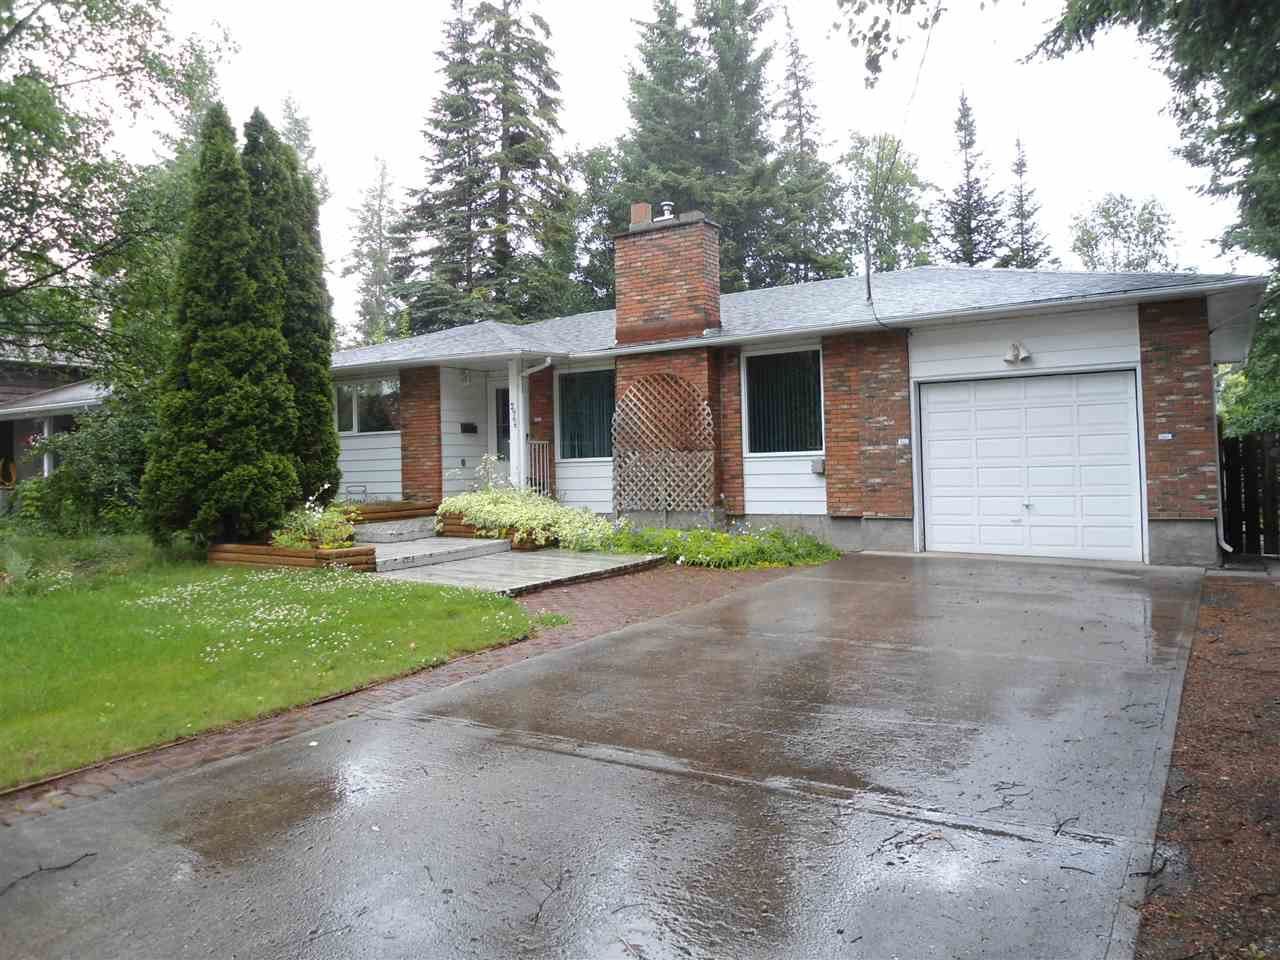 Main Photo: 2966 BERWICK Drive in Prince George: Hart Highlands House for sale (PG City North (Zone 73))  : MLS®# R2089607